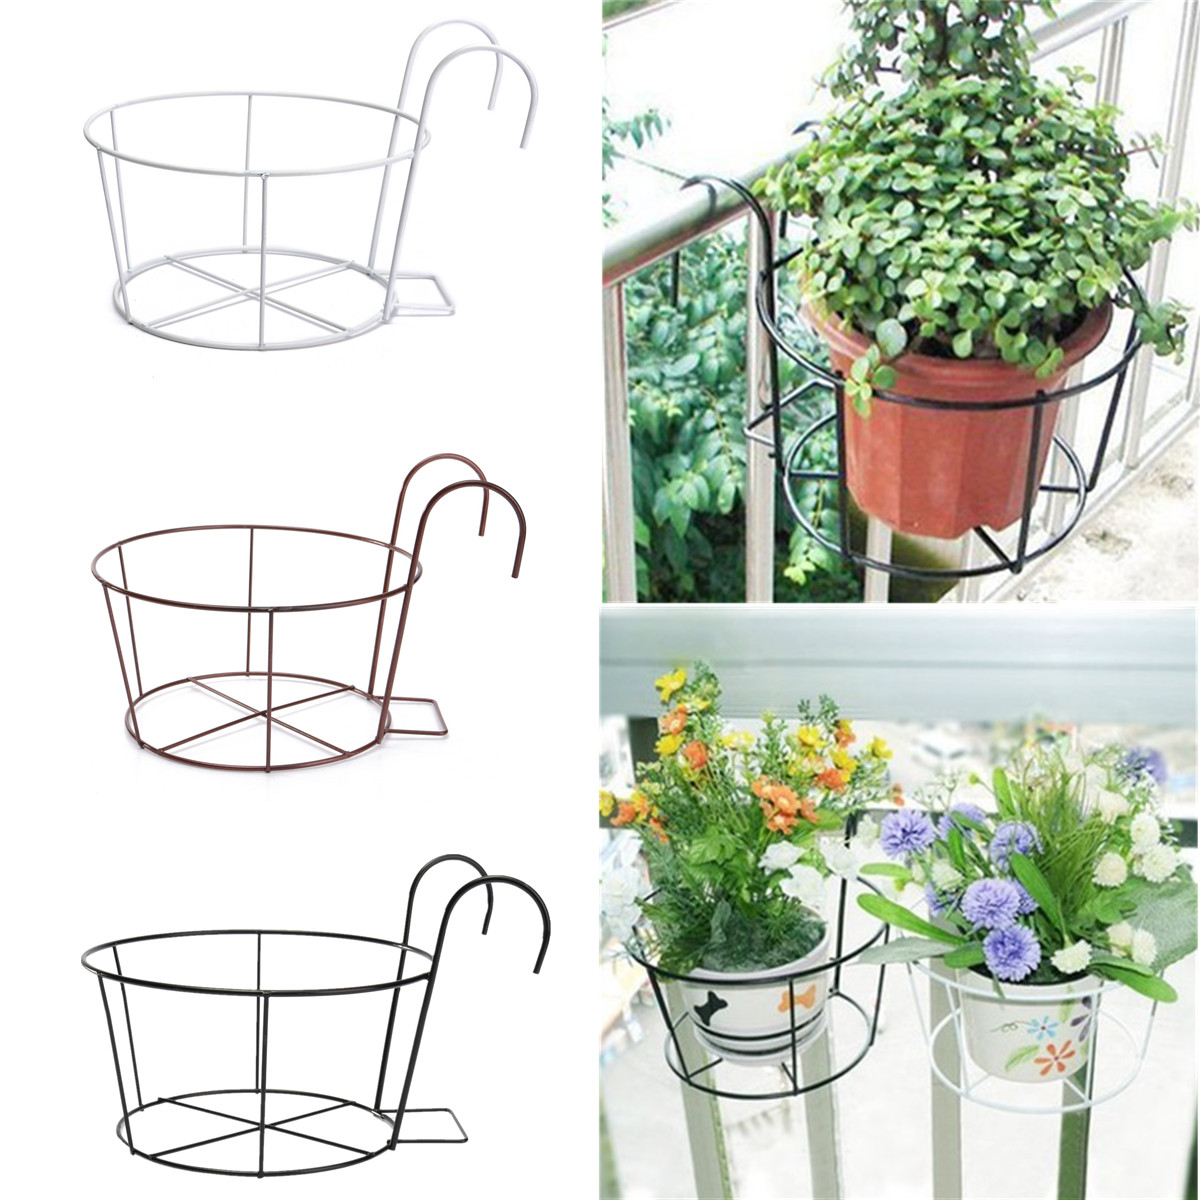 Flower Baskets For Balconies : Metal iron flower pot hanging balcony garden plant planter